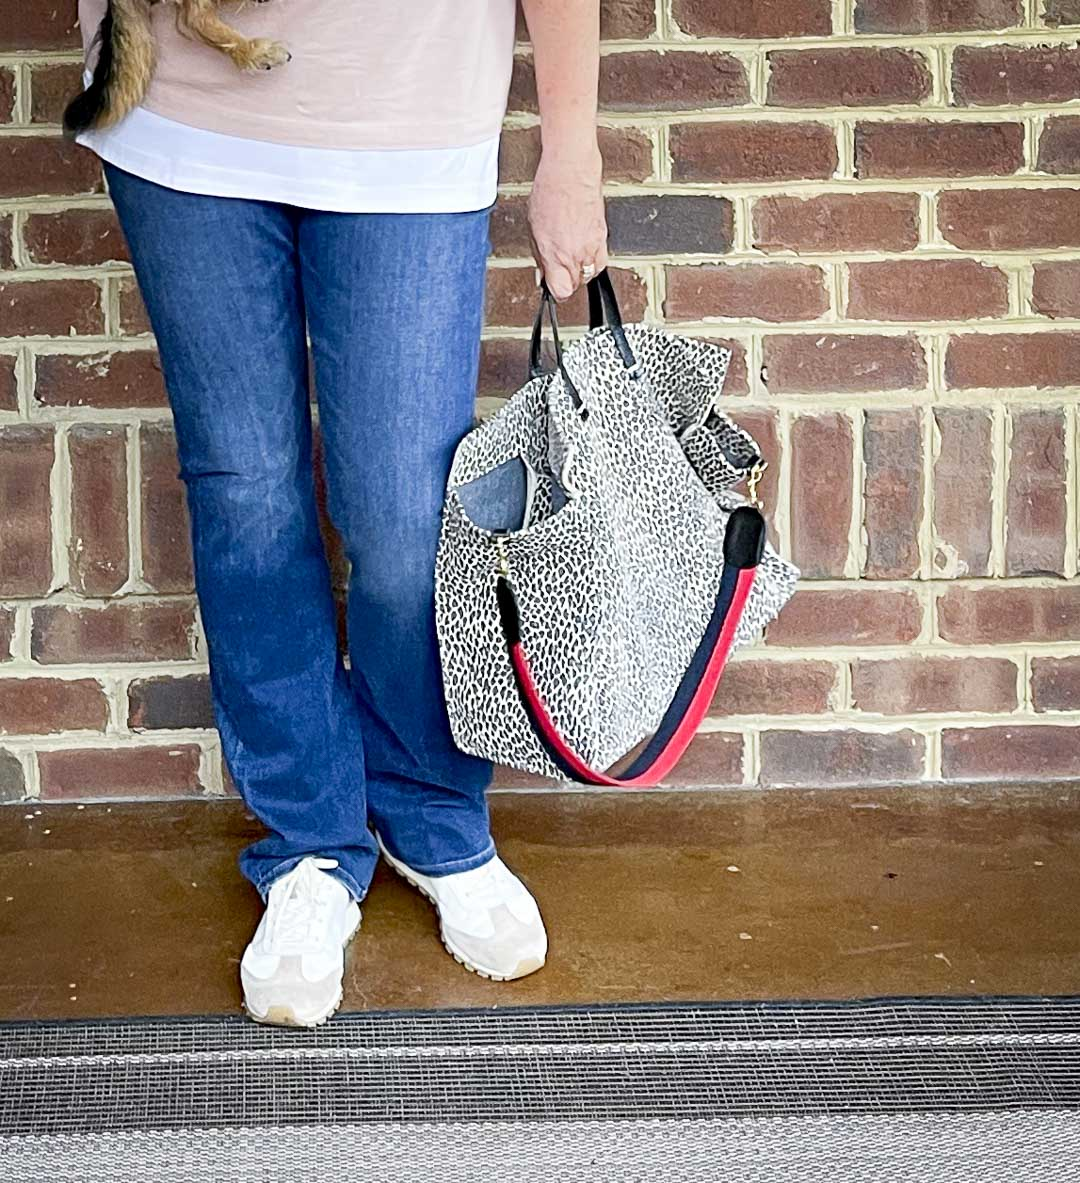 Over 40 Fashion Blogger, Tania Stephens, is wearing bootcut jeans and carrying a suede animal print tote